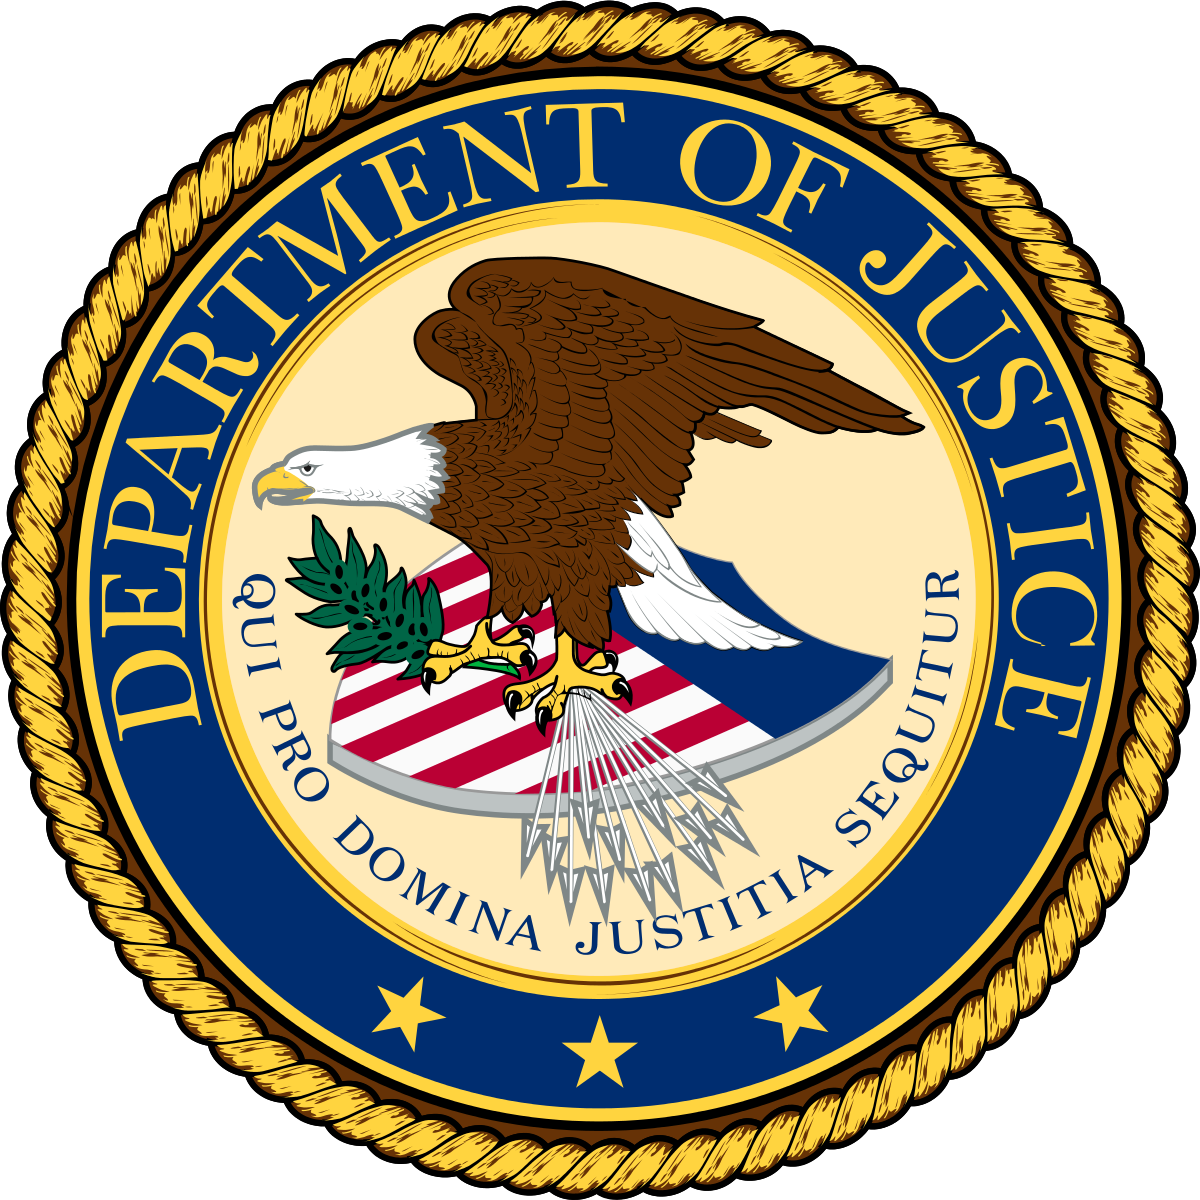 Department of Justice Announces Joint Final Rule Regarding Equal Treatment of Faith-Based Organizations in Department-Supported Social Service Programs